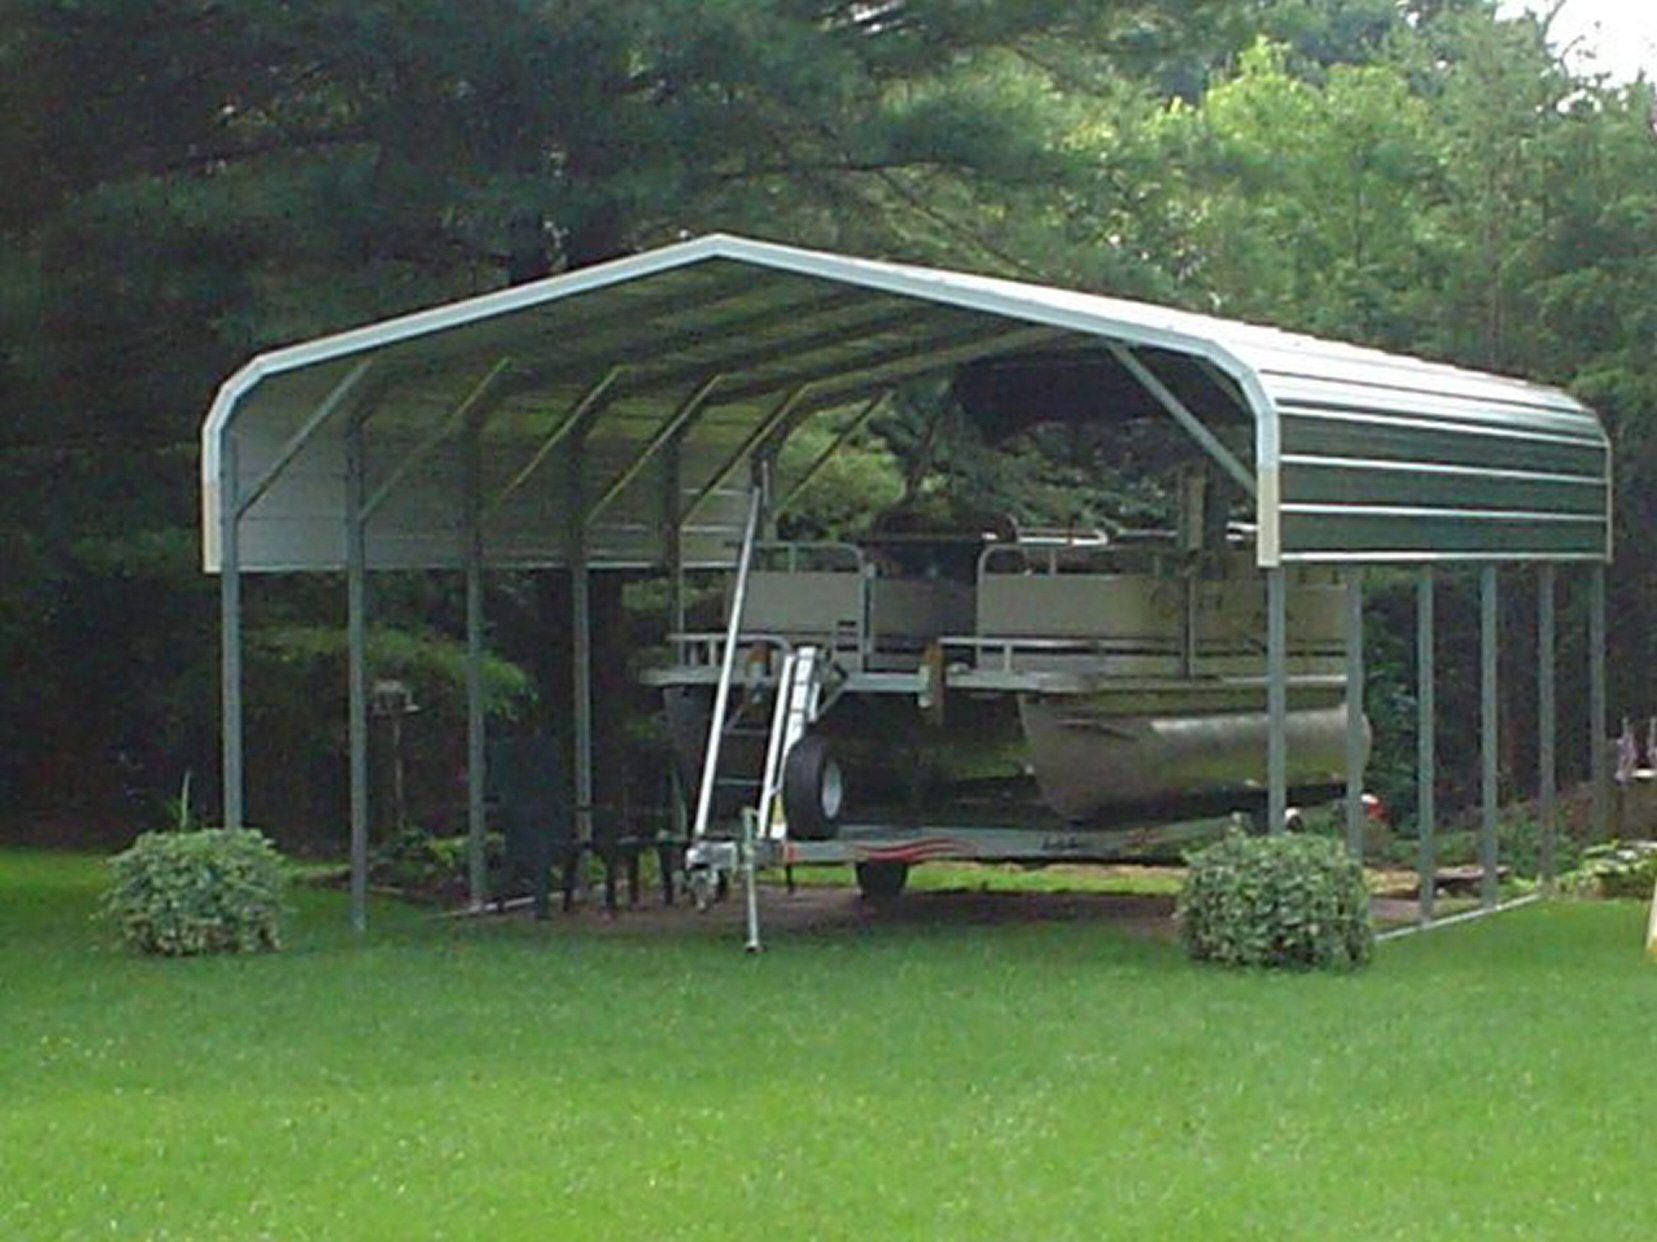 Green pontoon boat cover with pontoon boat parked underneath.